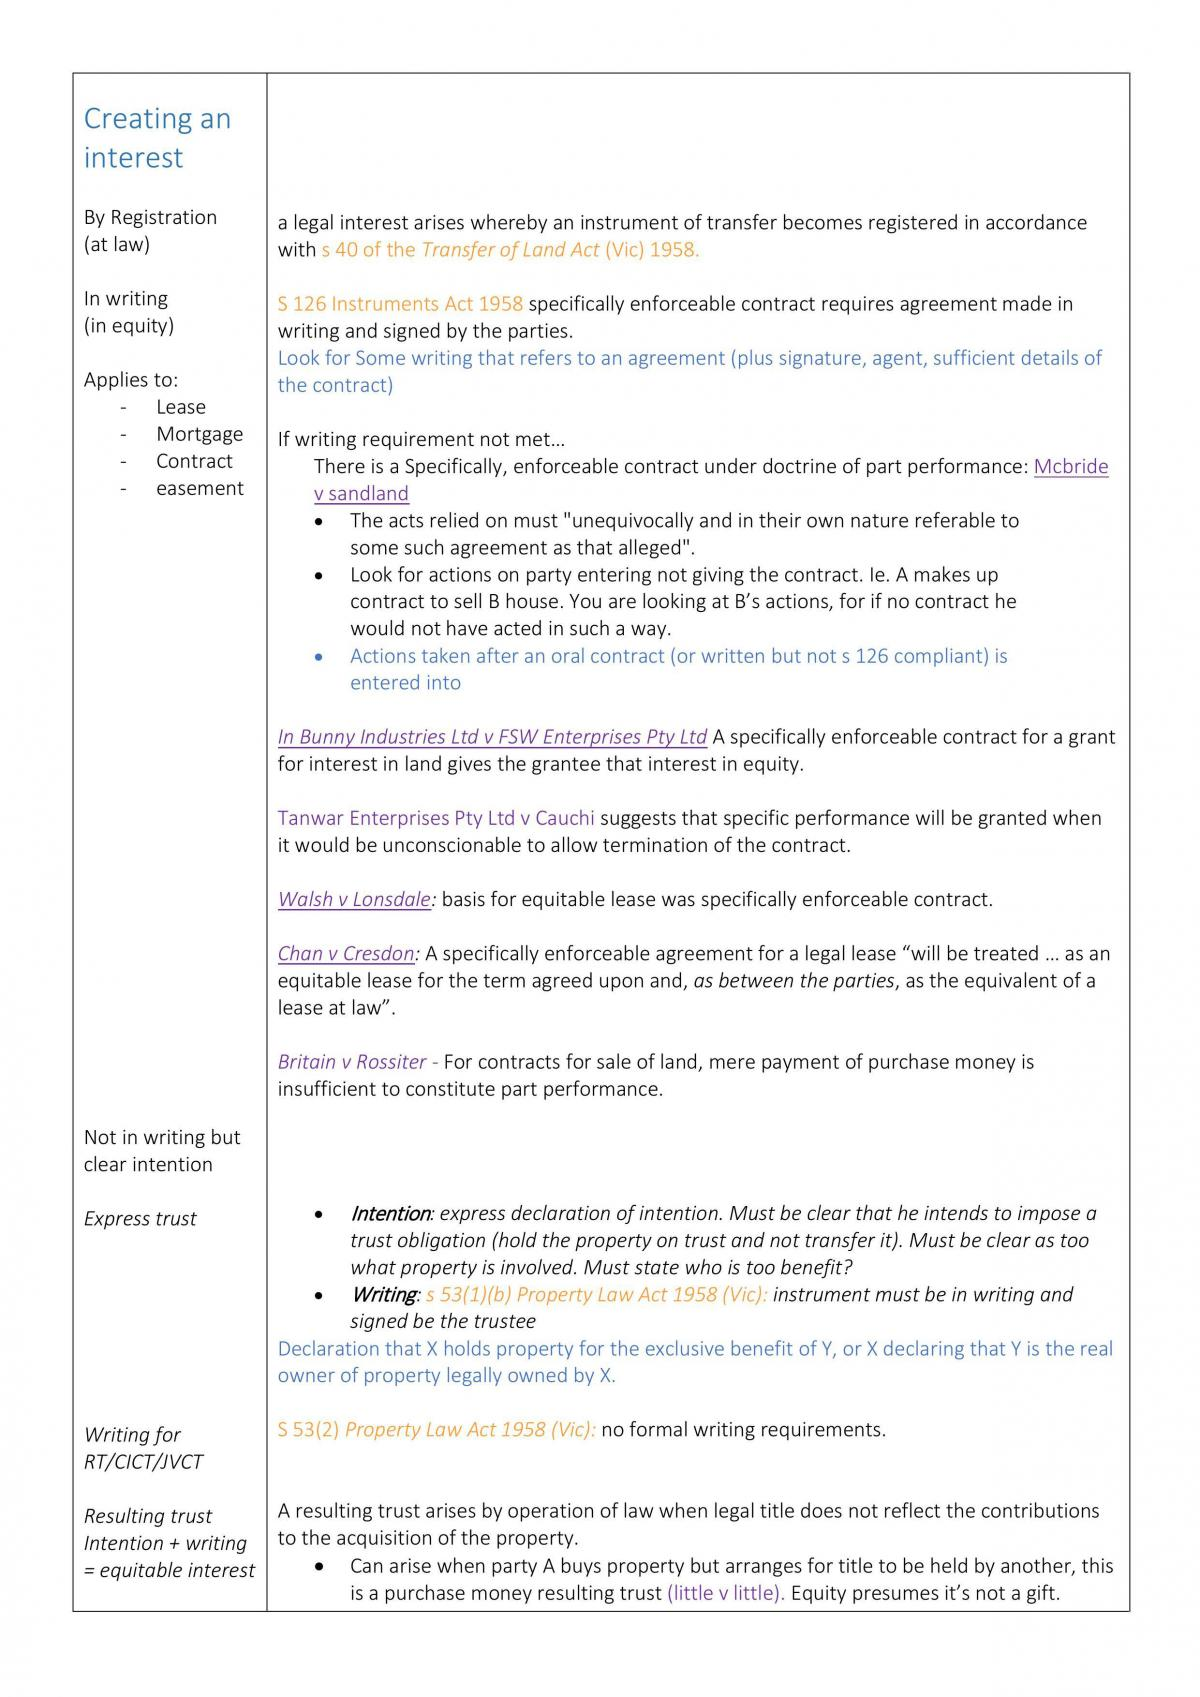 Exam Notes - Page 1